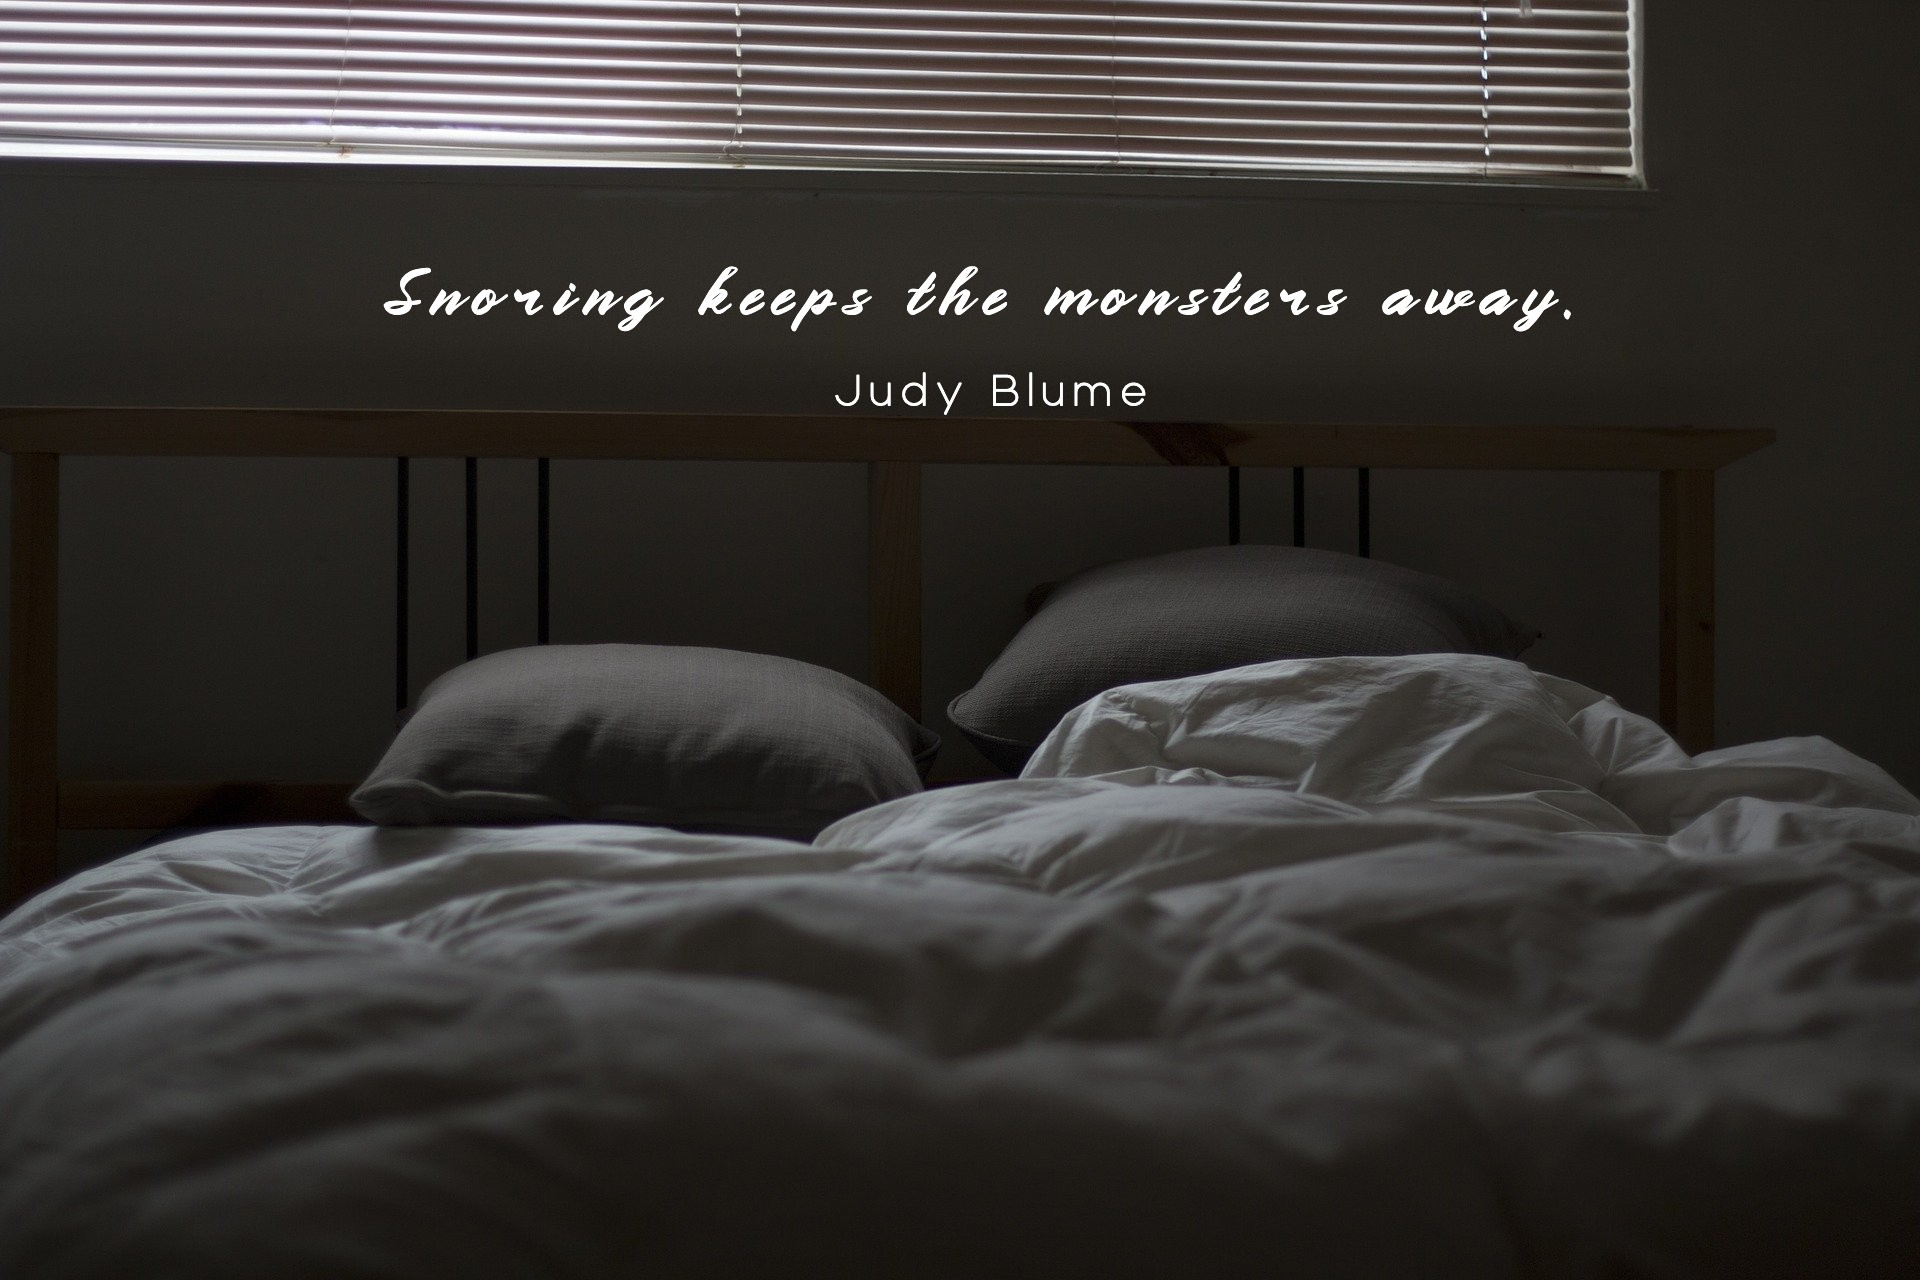 Snoring keeps the monsters away. - Judy Blume